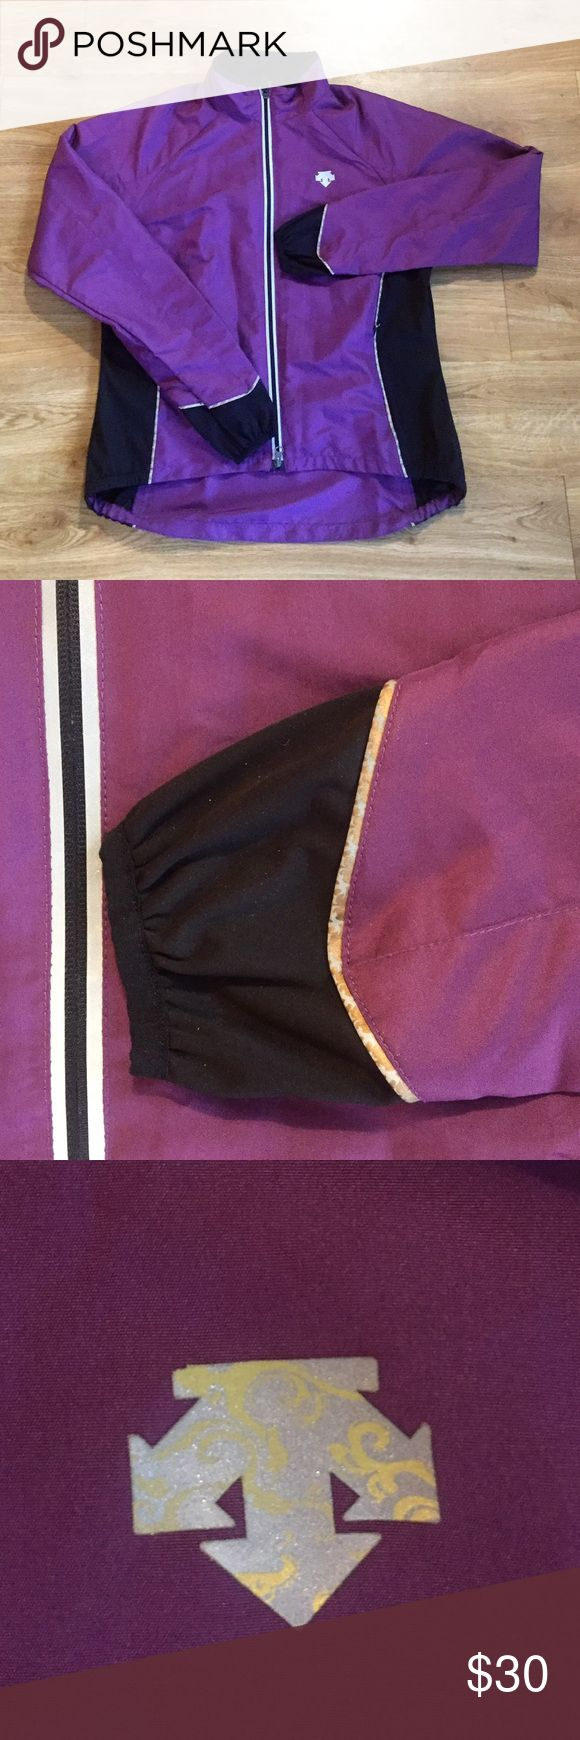 "Descente Windbreaker Fantastic purple and black windbreaker made by Descente. It has a patterned trim as shown in the picture of the sleeve. Front zip and a back zipper pocket. The top of the back has sit slits, with a breathable mesh inside. Length of front: 23"" Length of back: 26.5"". Pit-to-pit: 20"". Excellent pre-loved condition. No trades :) Descente Jackets & Coats"